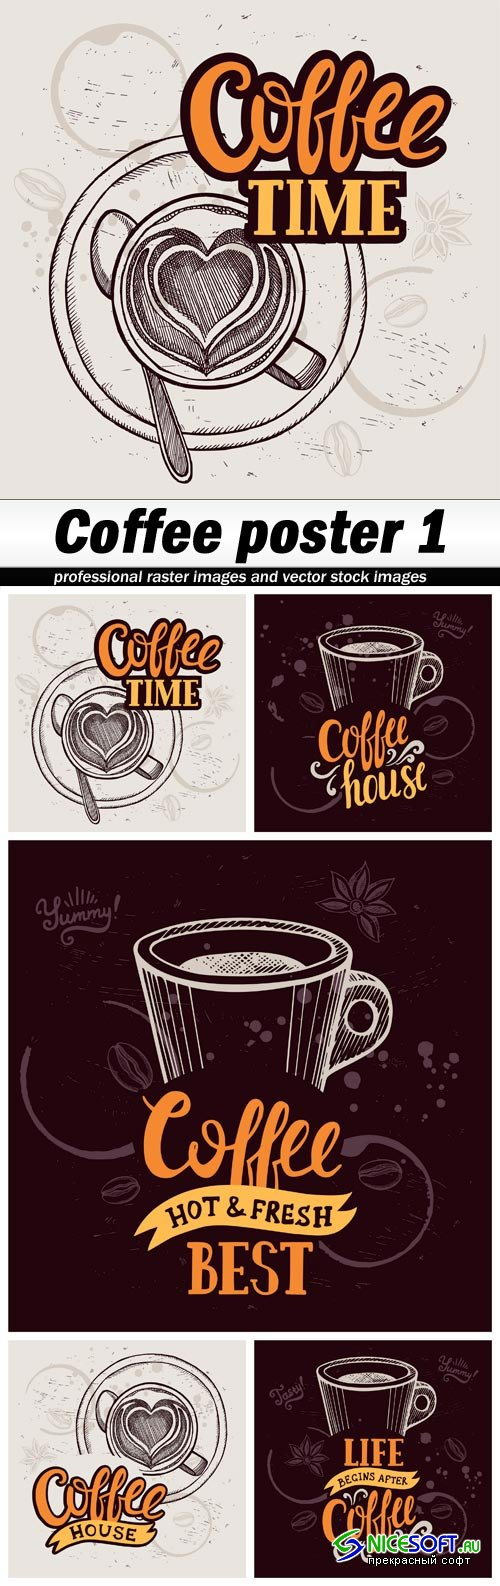 Coffee poster 1 - 5 EPS